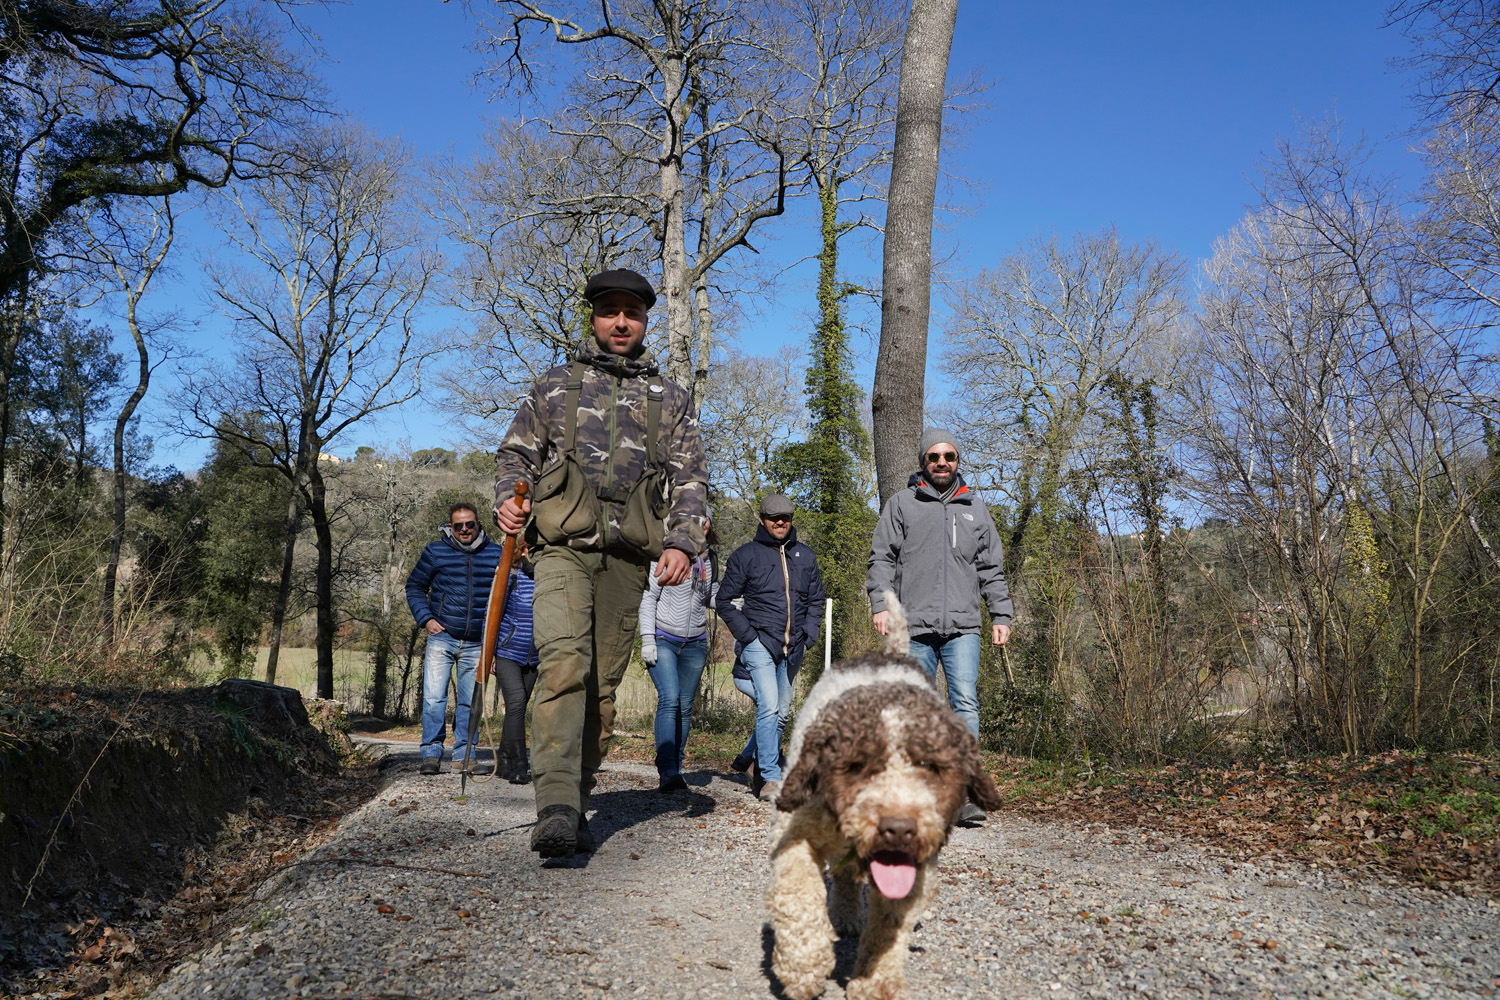 Giotto Jr. leads the way as we head out on a truffle hunt in Tuscany with Savini Tartufi